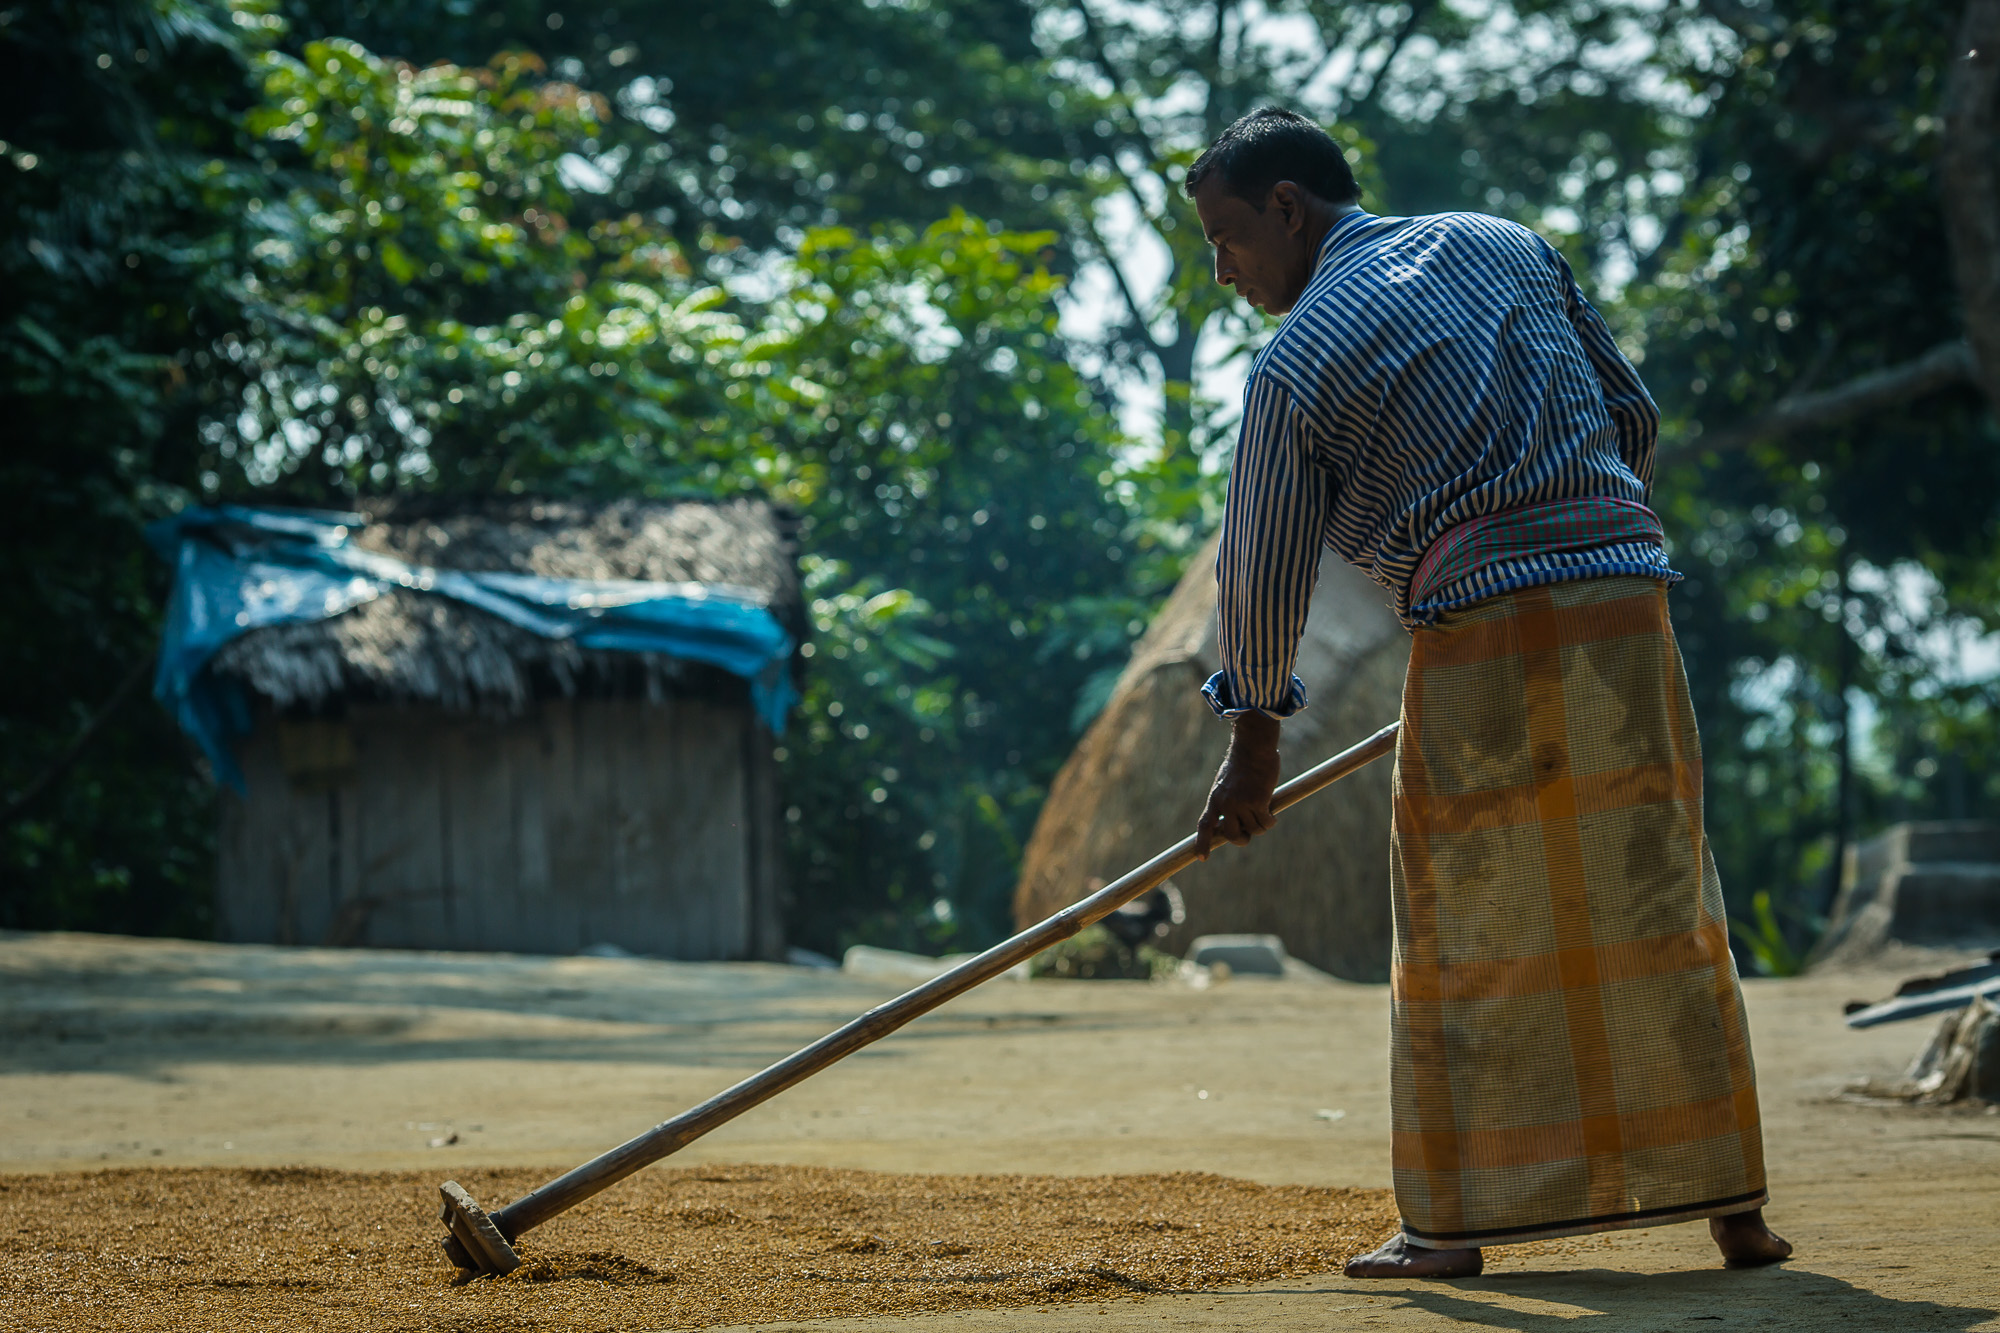 Taroni spreads his rice harvest out on the ground to dry after soaking it in a pond and boiling it.